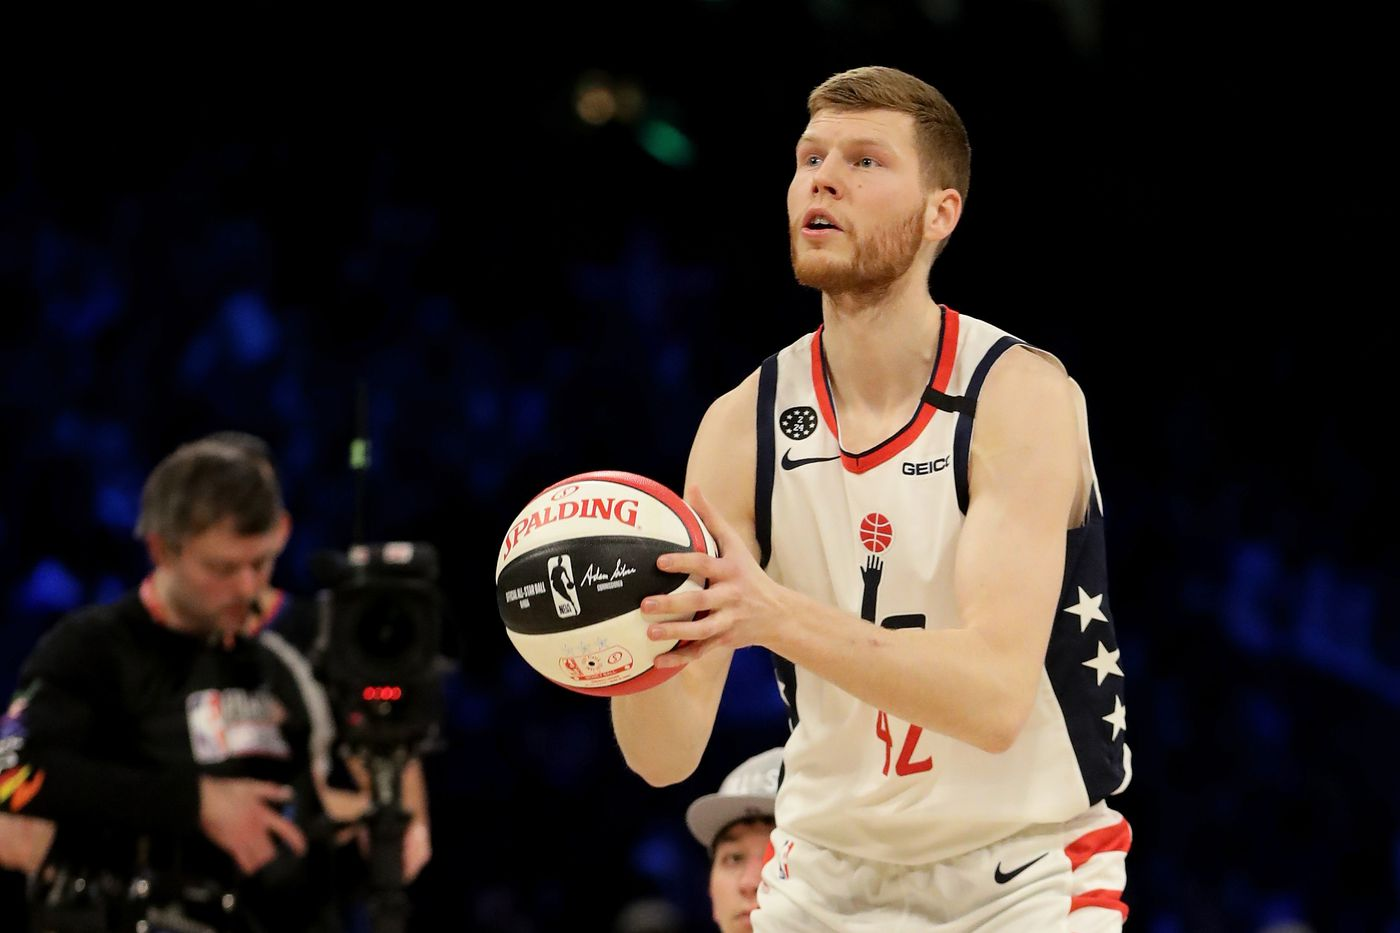 2020 NBA 3 Point Contest Wizards Davis Bertans finishes 3rd 1400x933